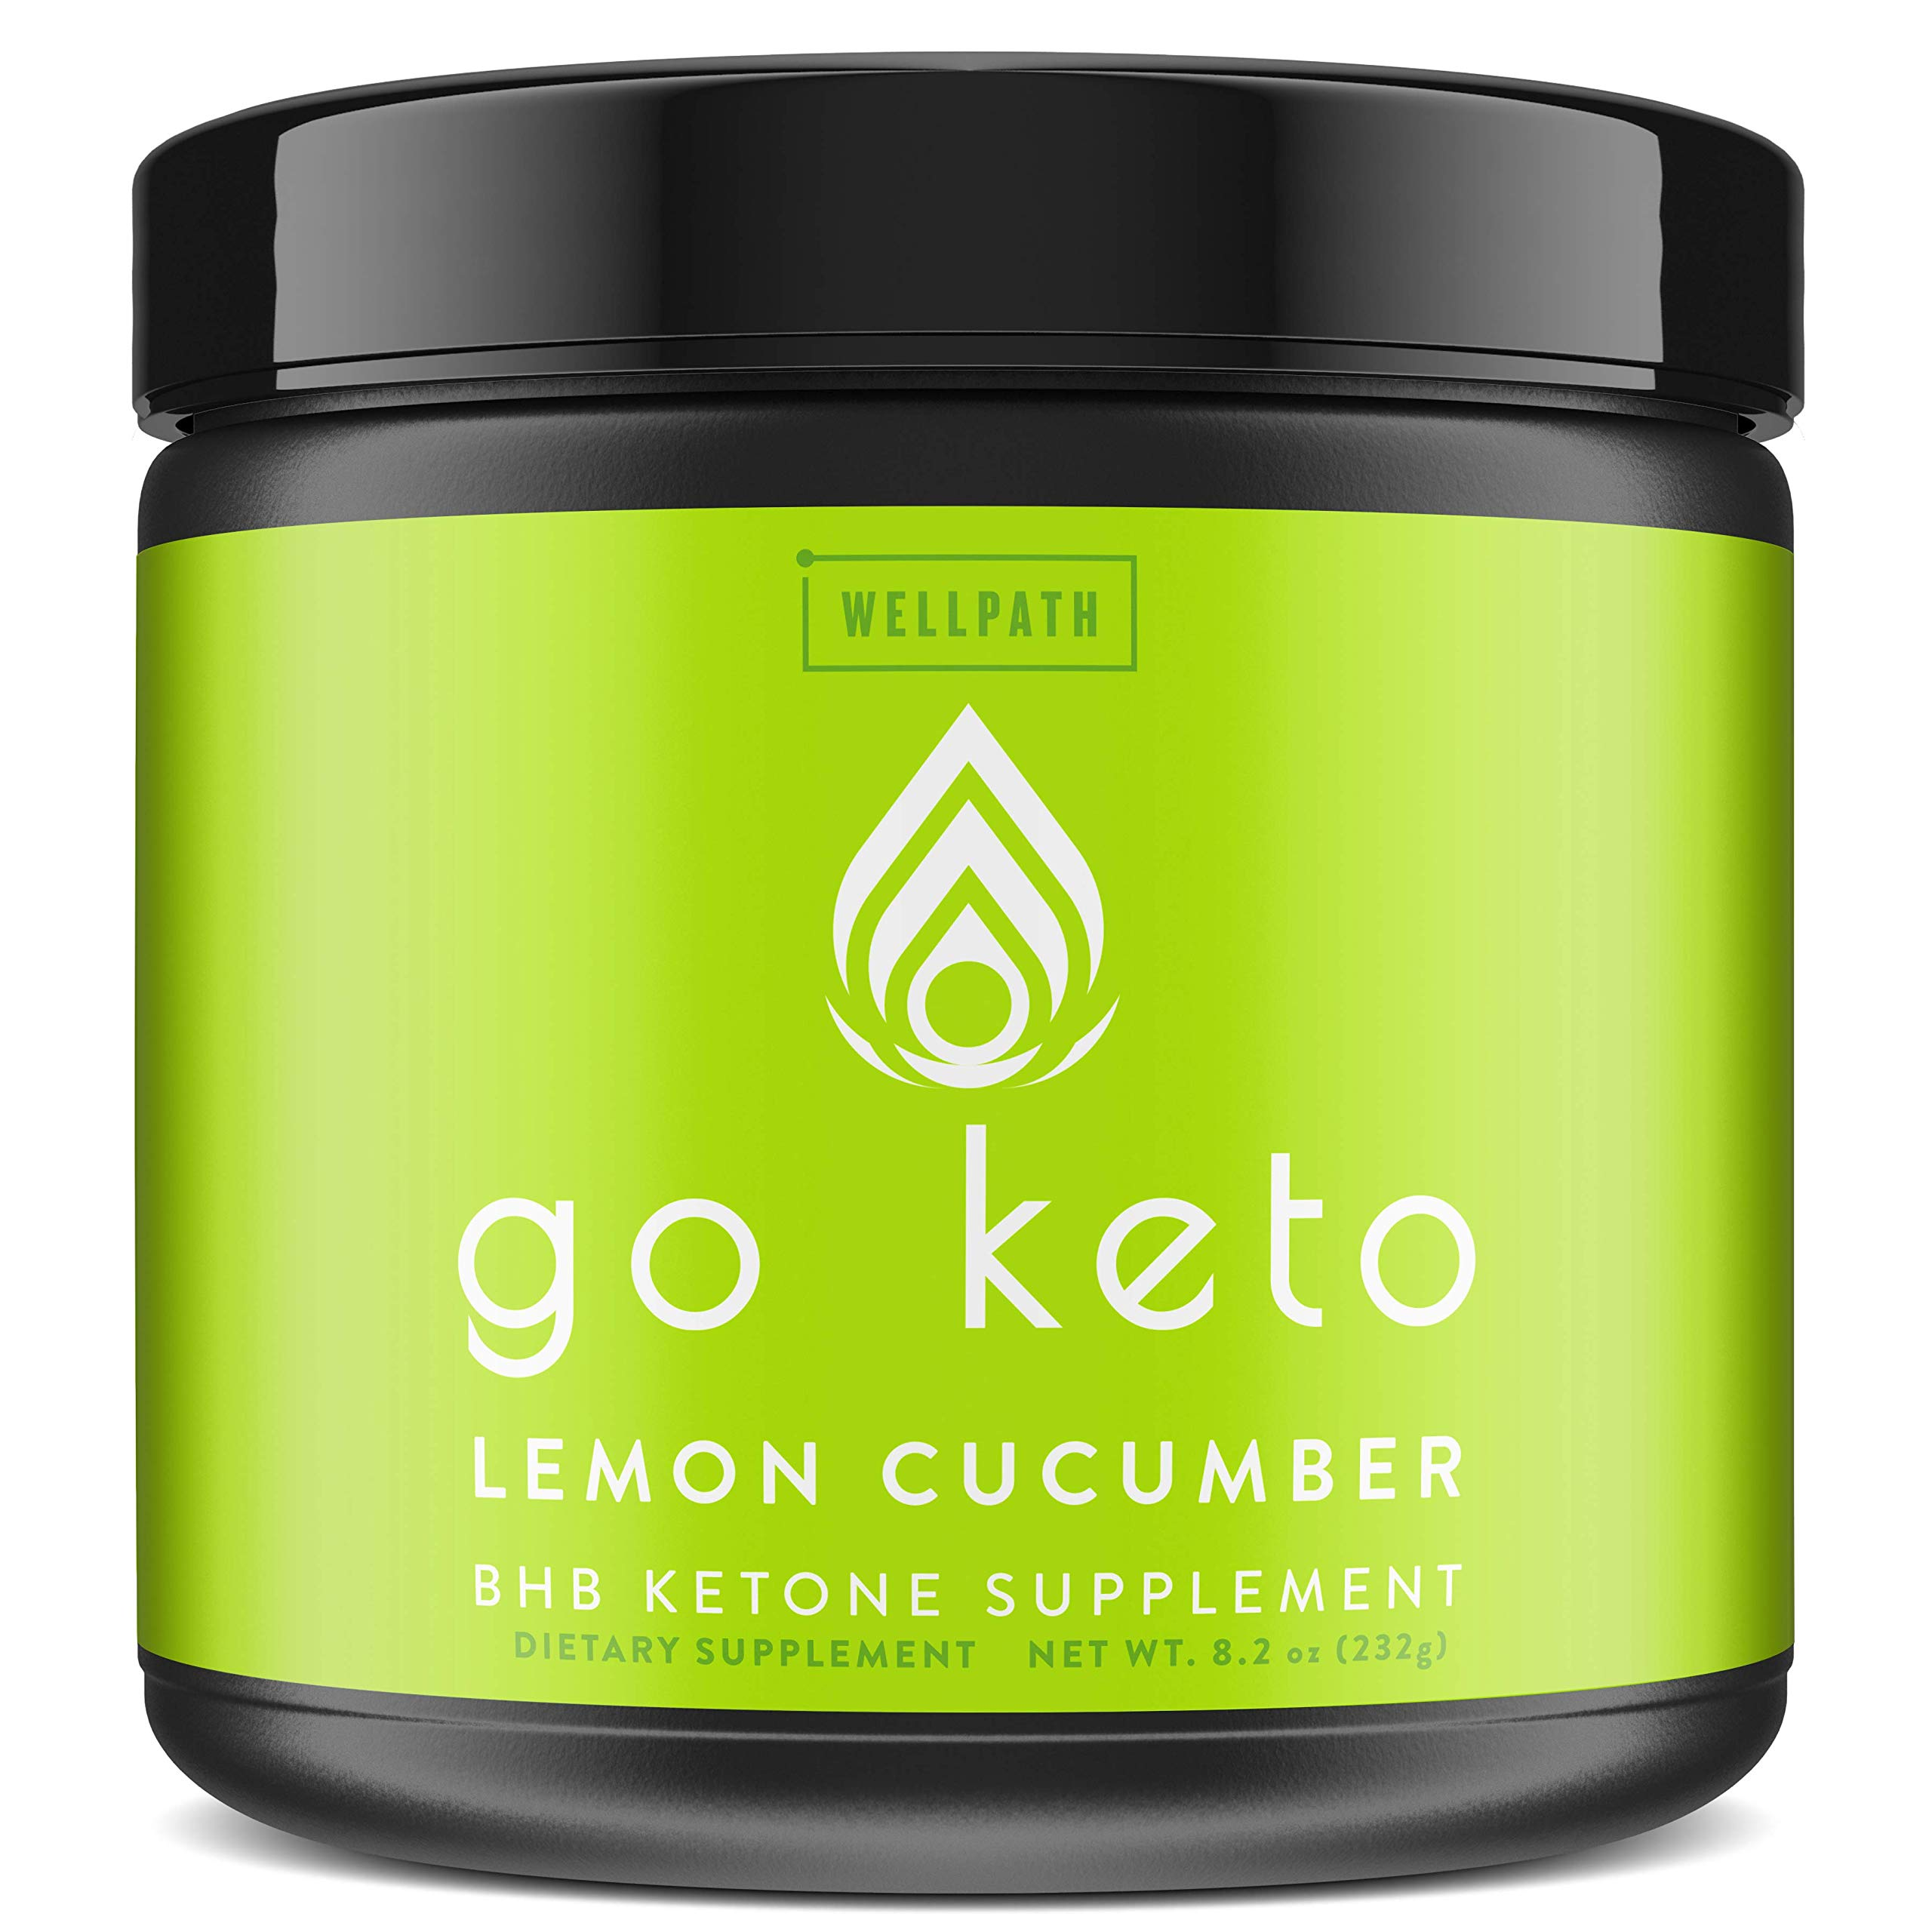 Go Keto Exogenous Ketones Powder Supplement - BHB Salts for Ketogenic Diet to Support Fat Burn, Weight Loss, Energy Boost, and Maintaining Ketosis - Lemon Cucumber Flavor, 16 Servings by WellPath